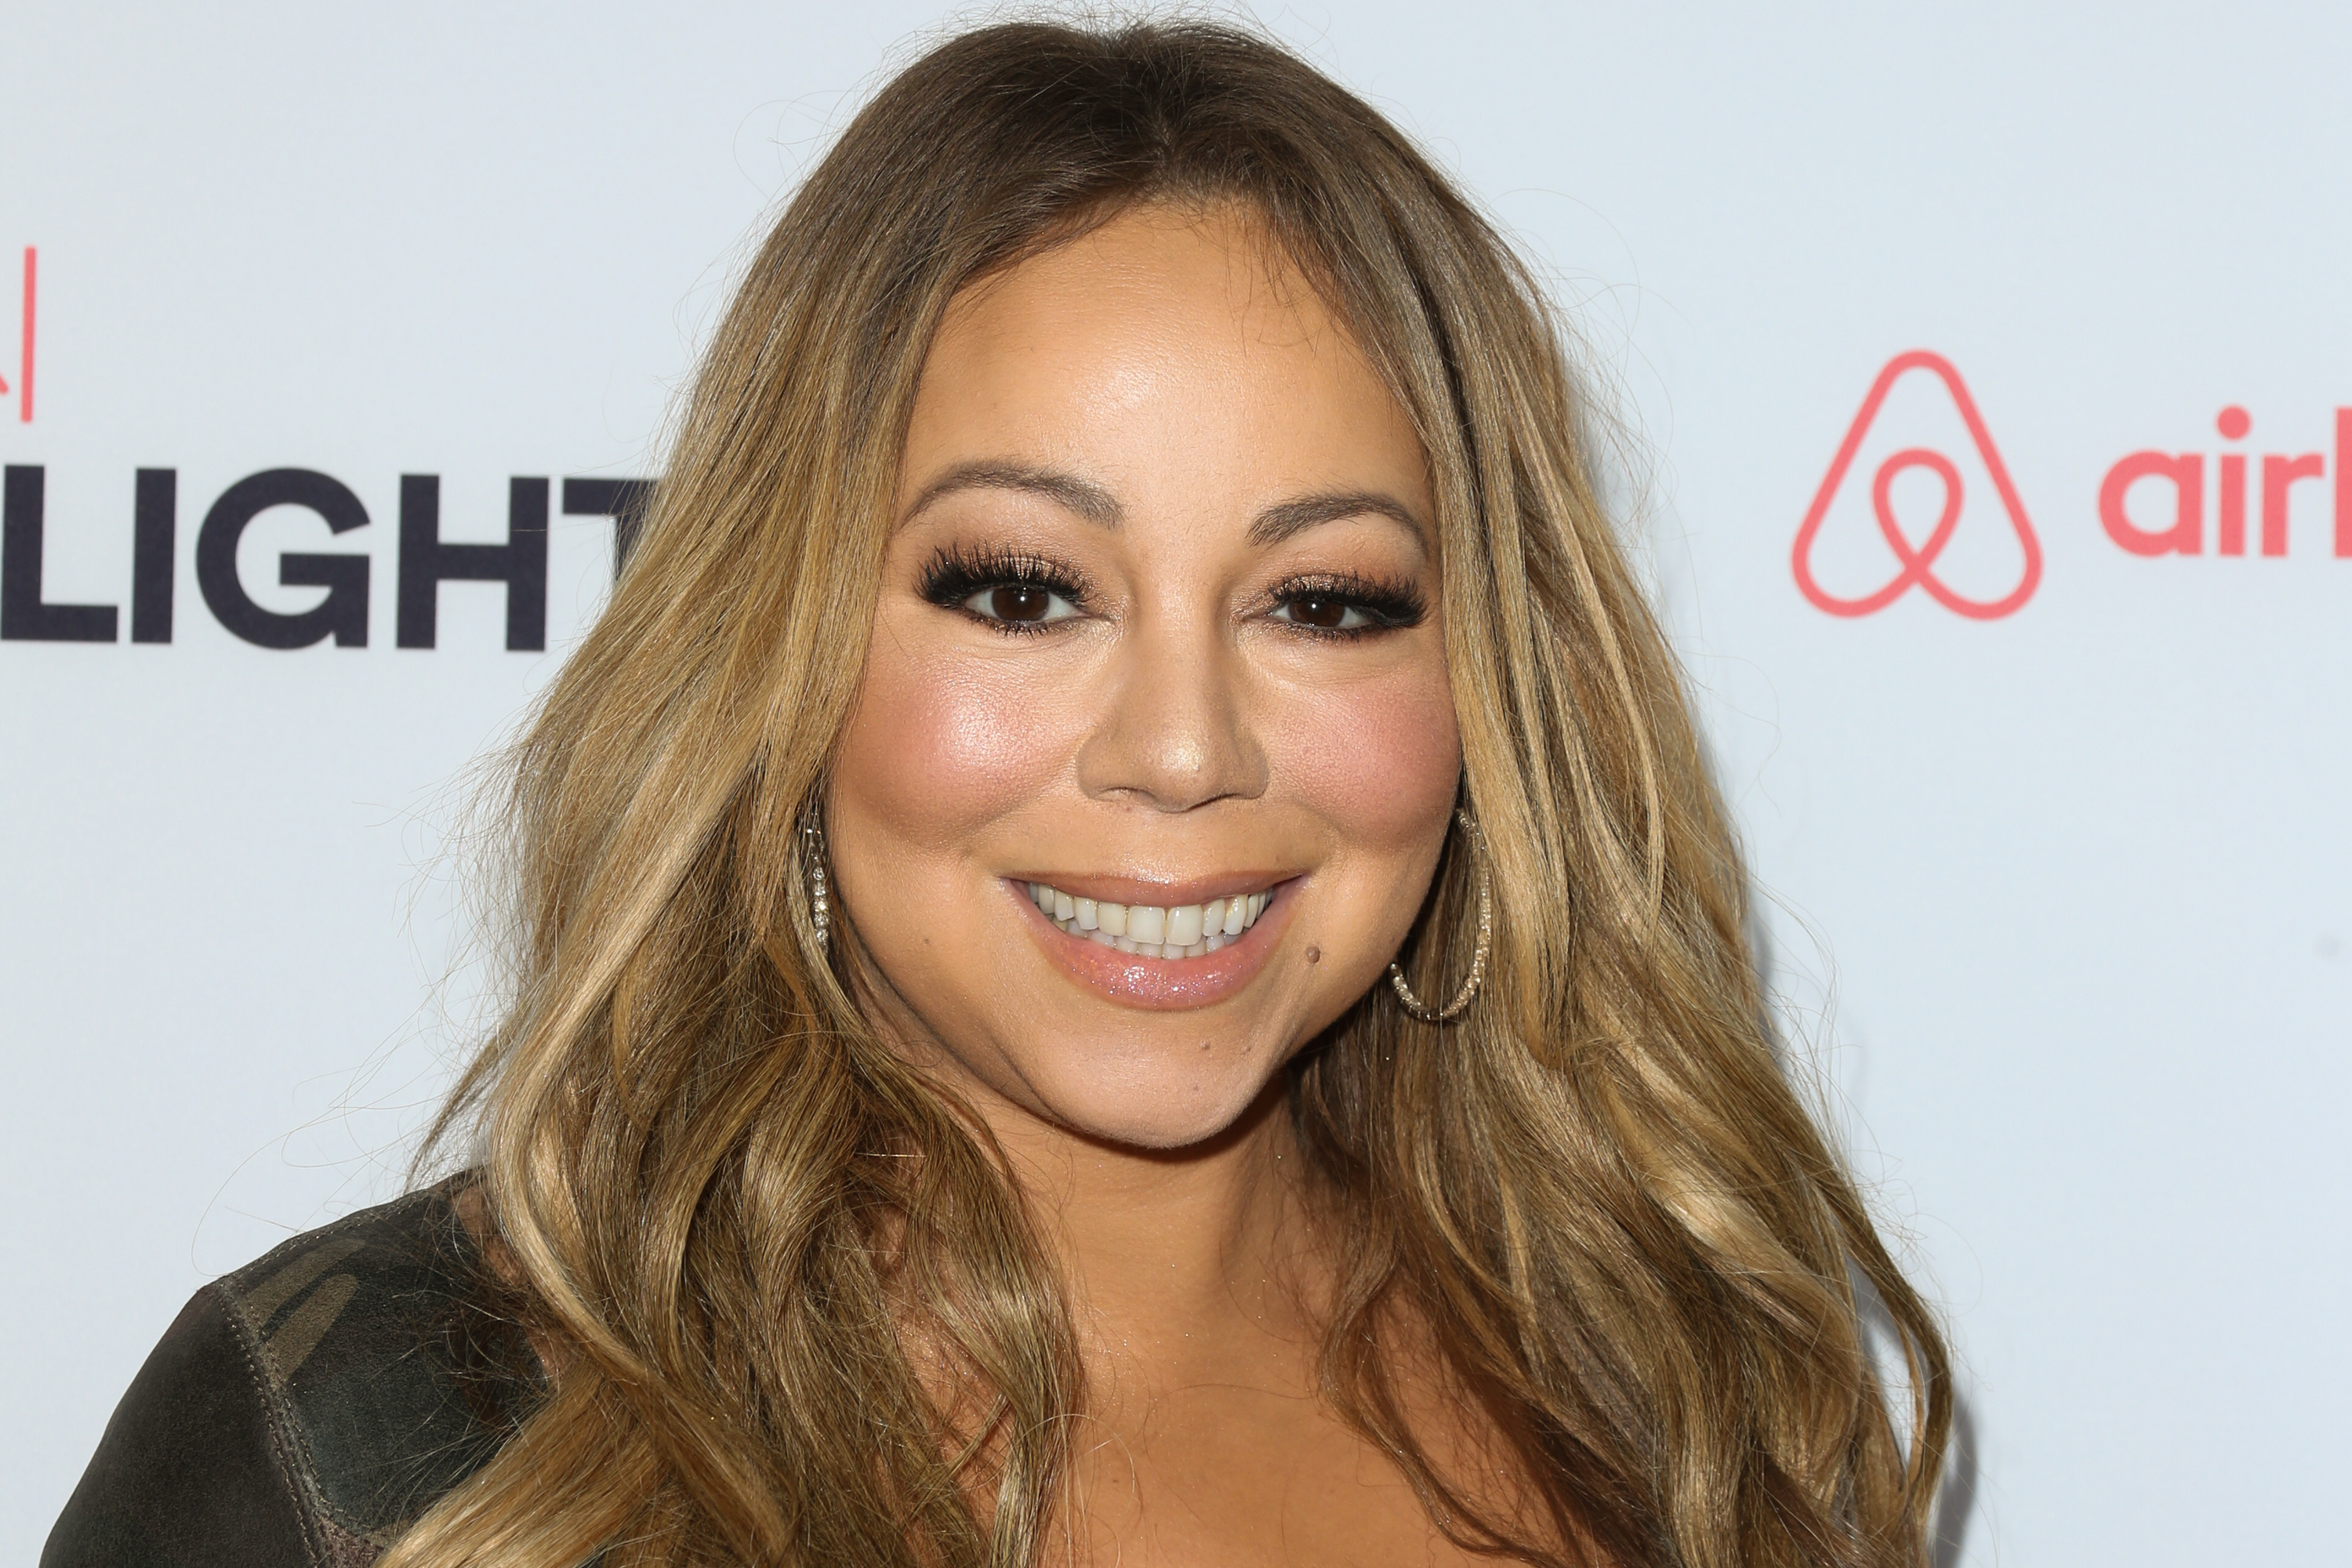 Mariah Carey's Instagram Photoshop fail is attracting haters and we don't get what the big deal is